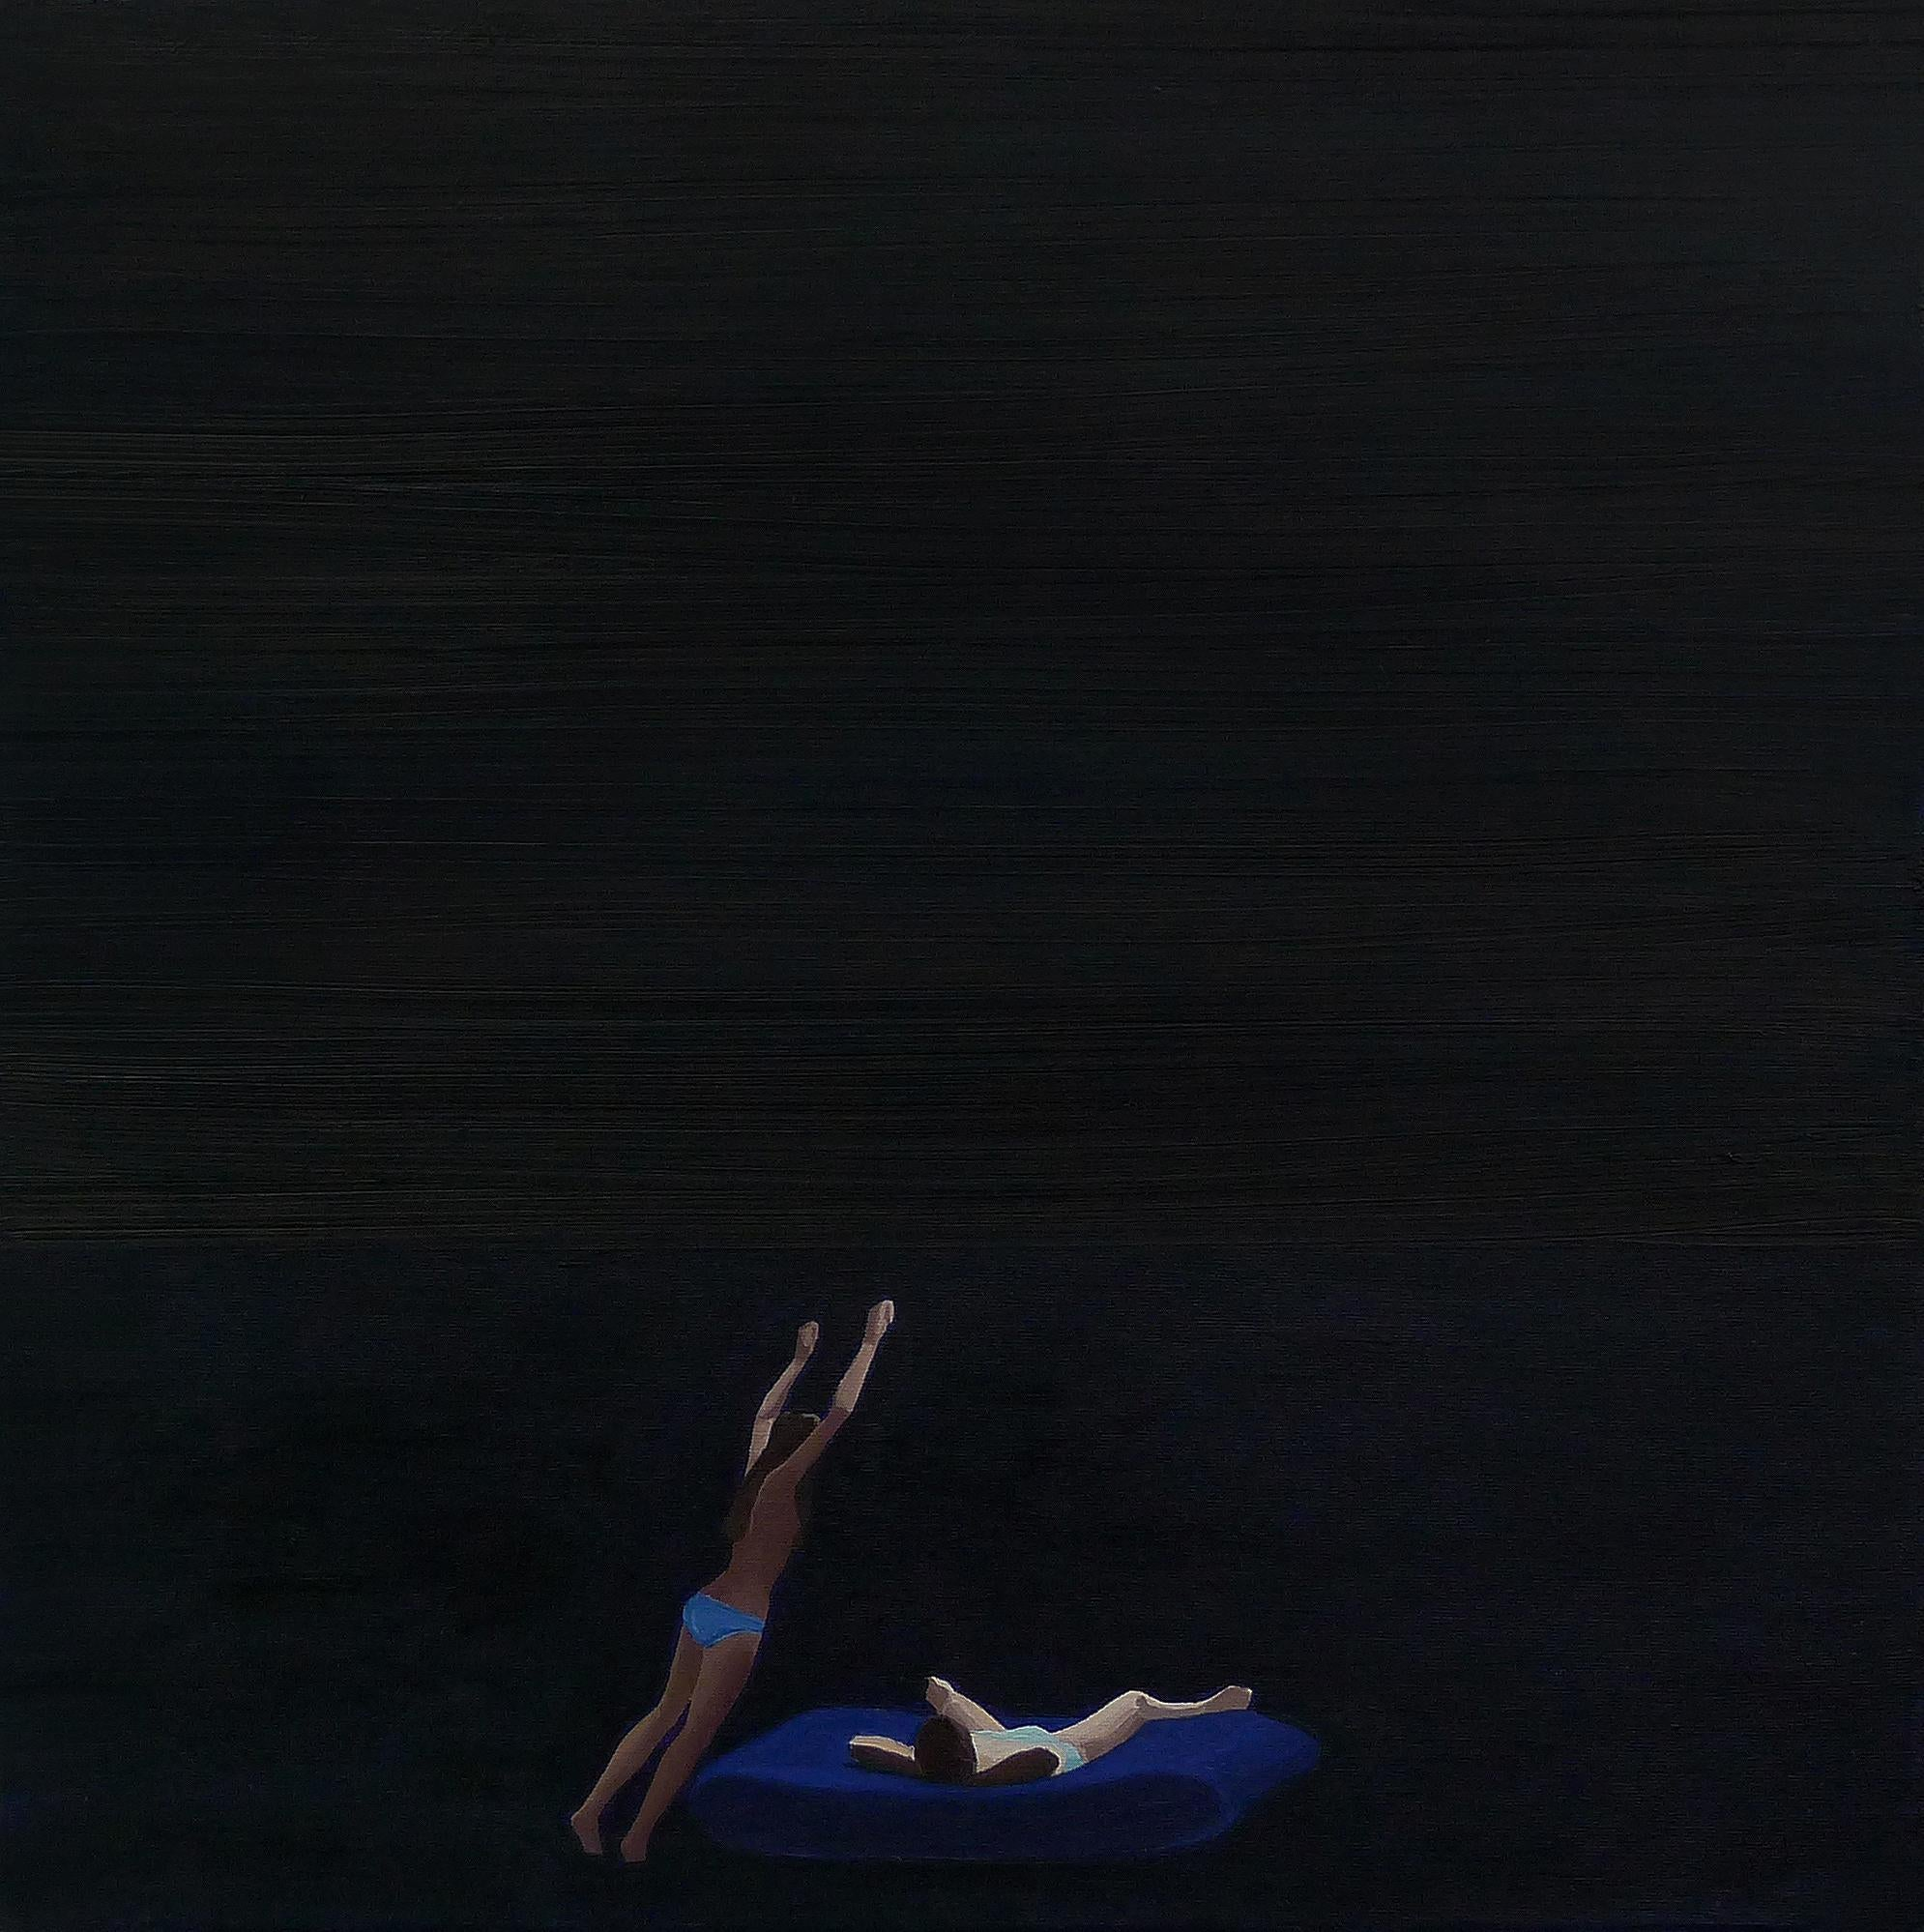 Sunset I - Minimalistic Figurative Oil Painting, Seascape, Jump Into The Water